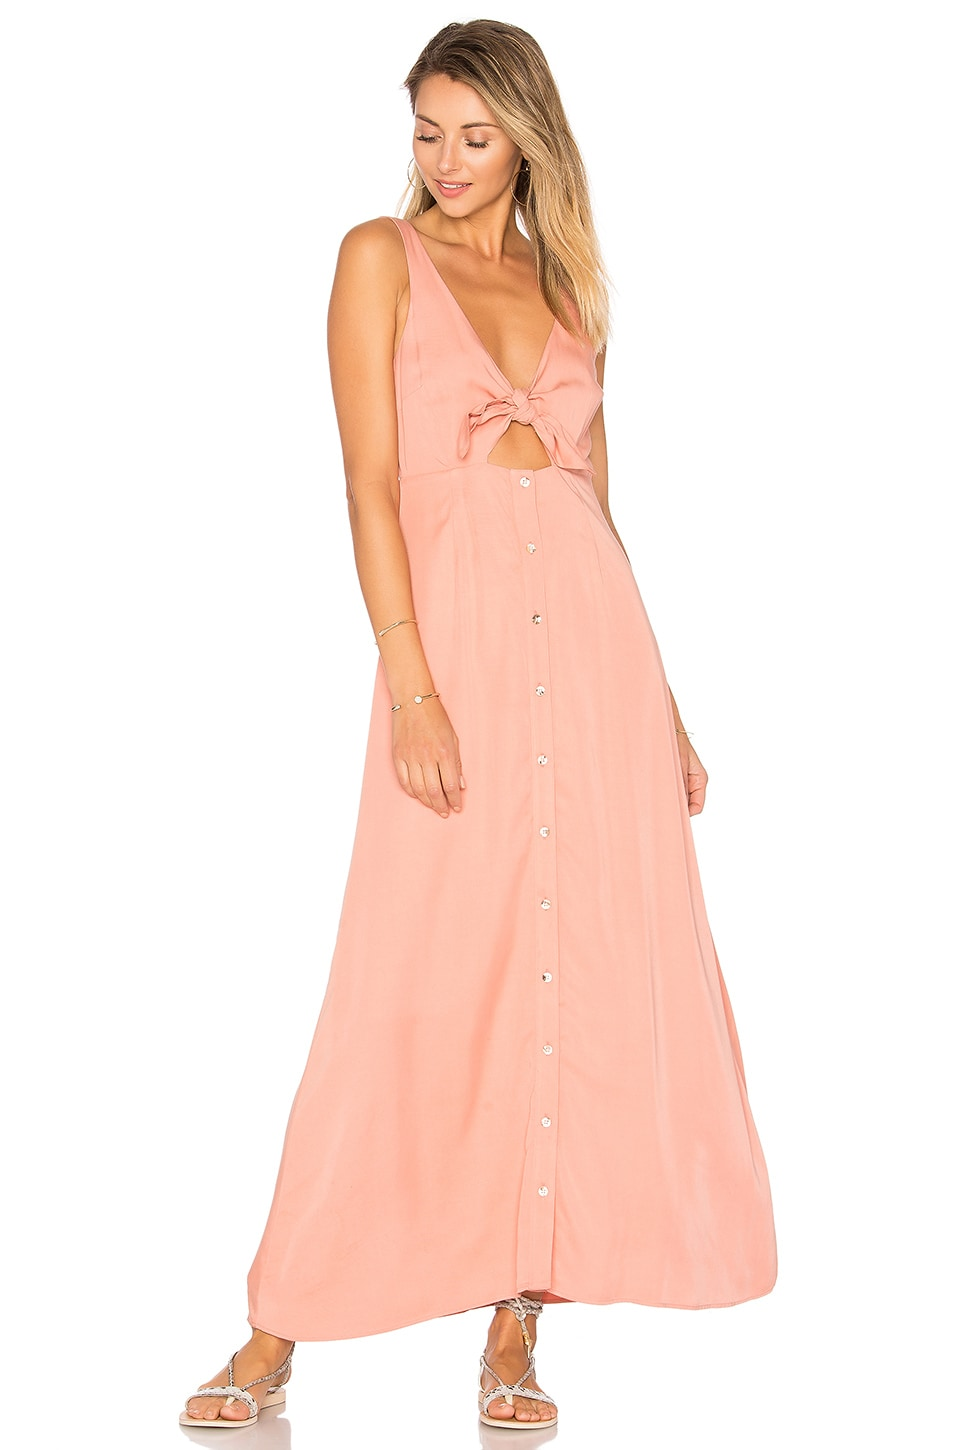 Mara Hoffman Tie Front Midi Dress in Apricot